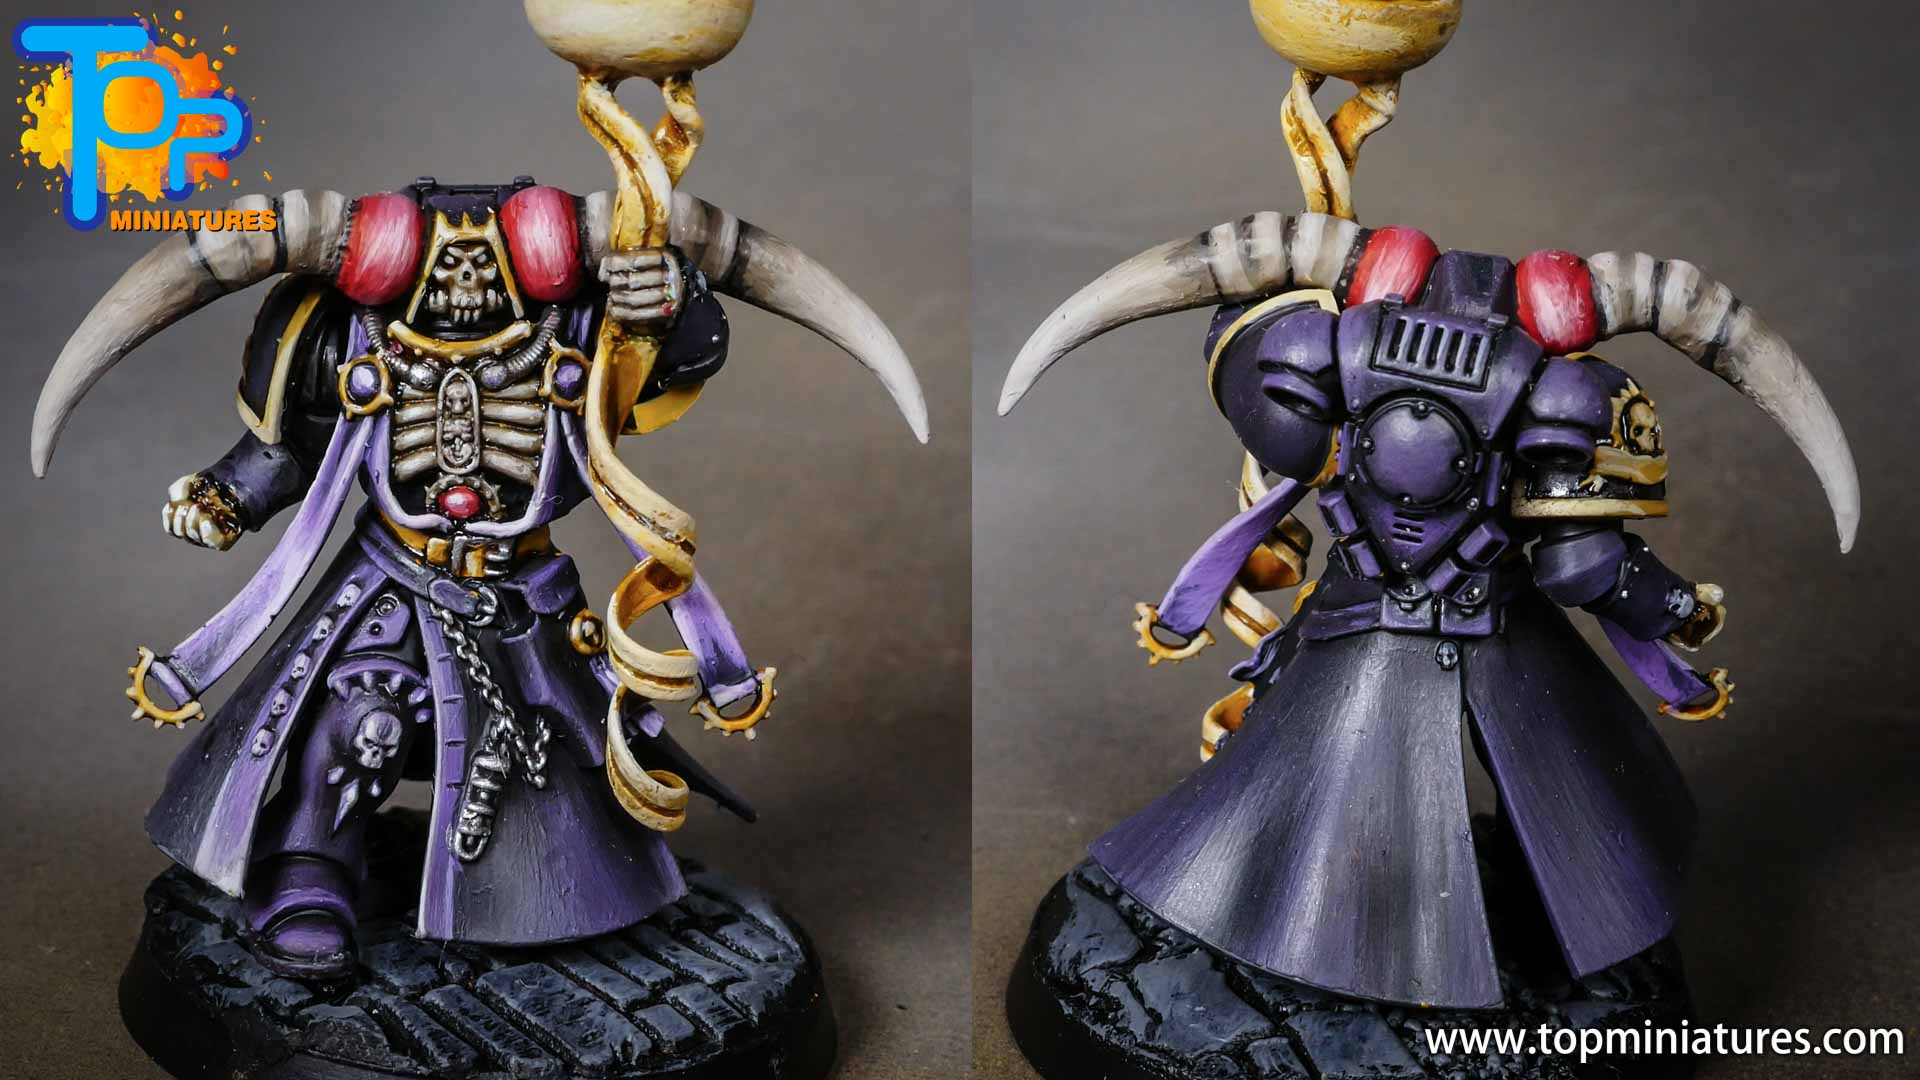 Ainz Ooal Gown overlord primaris chaplain conversion (2)